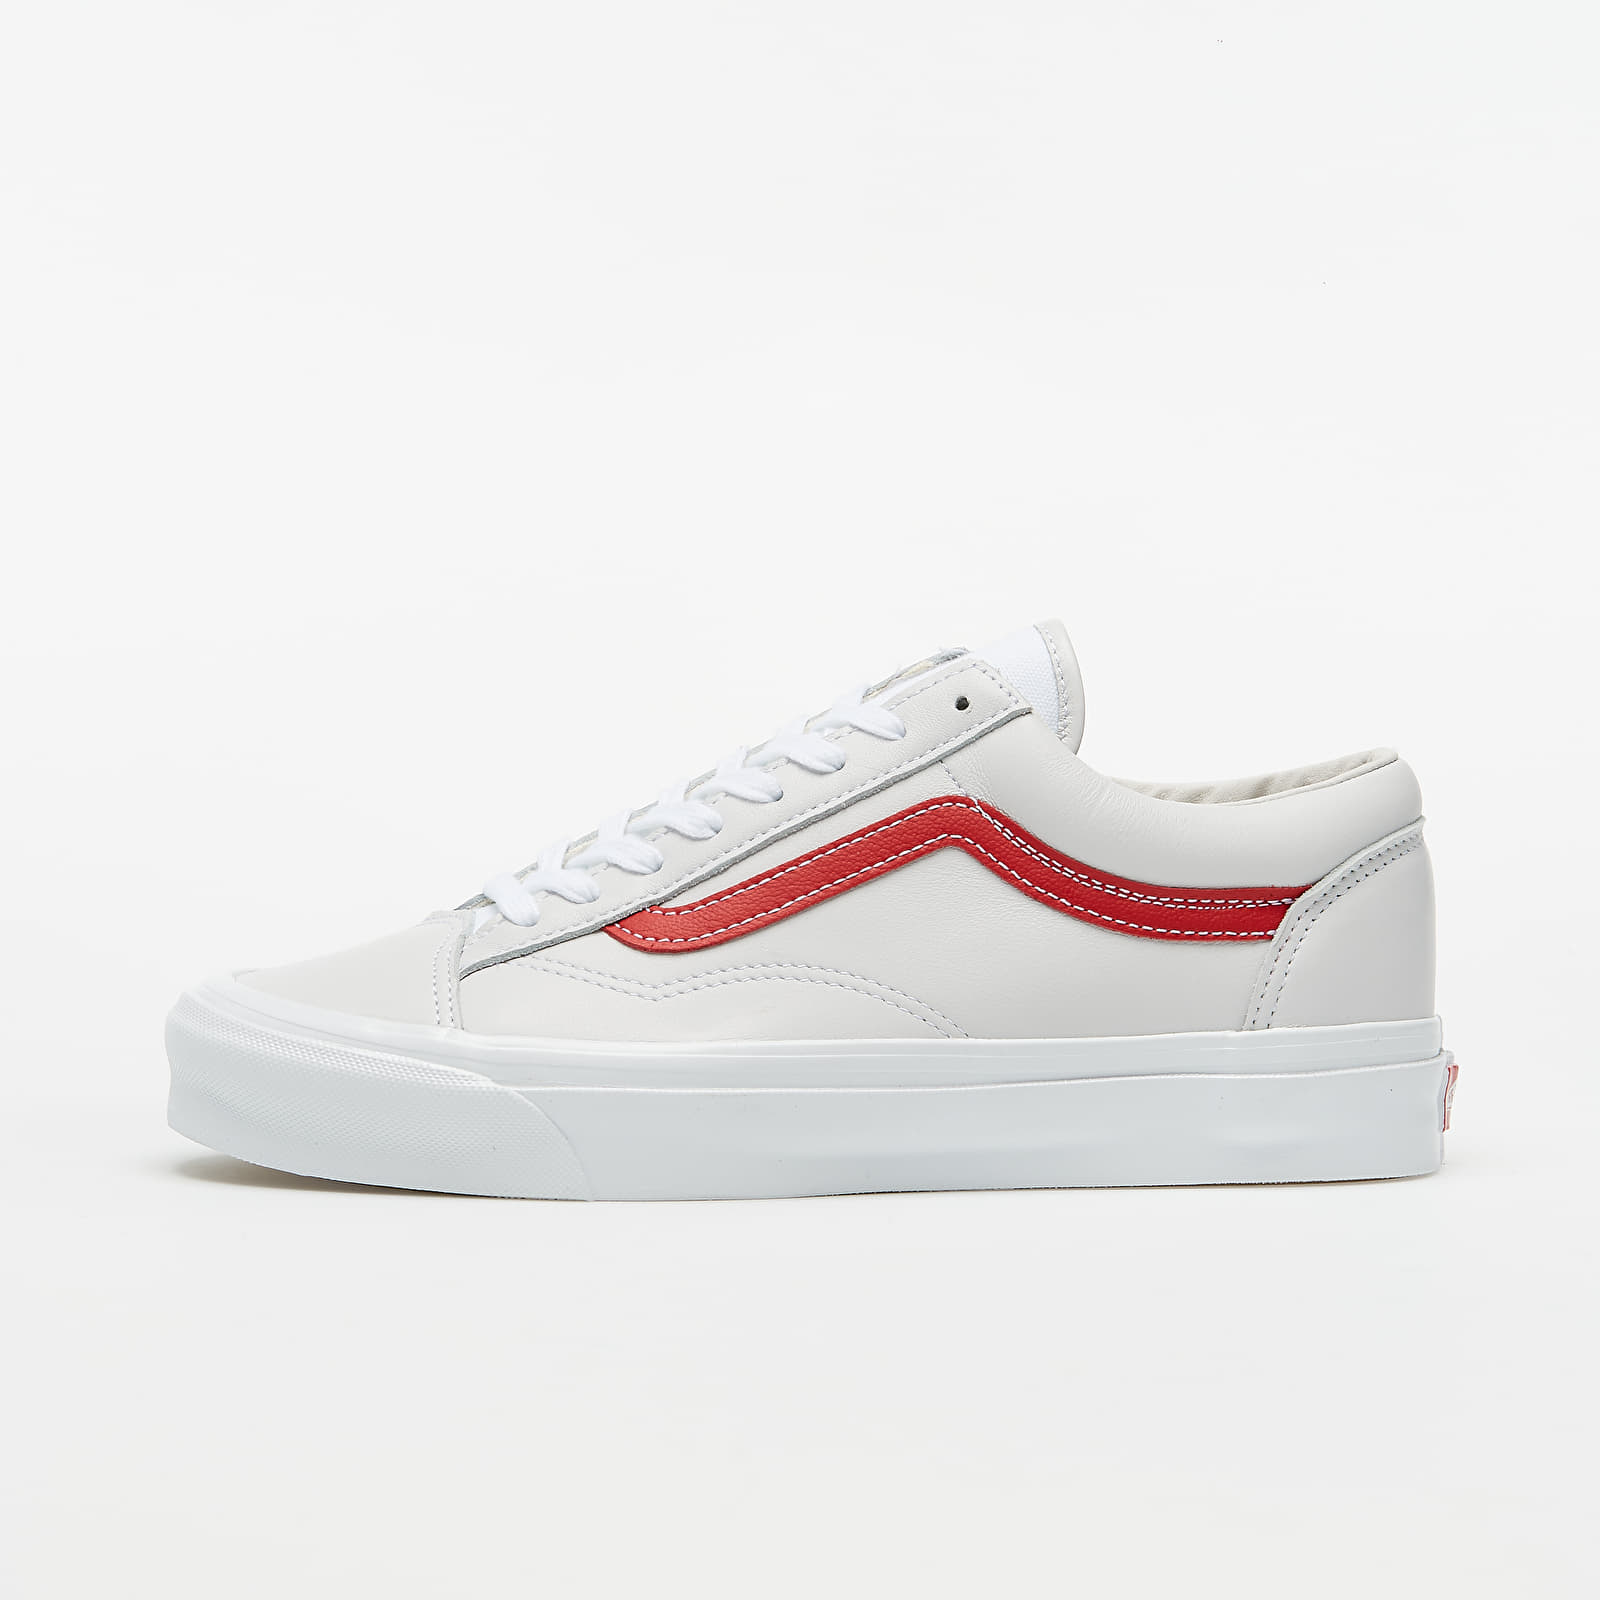 Chaussures et baskets homme Vans OG Style 36 LX (Leather) Red/ True White